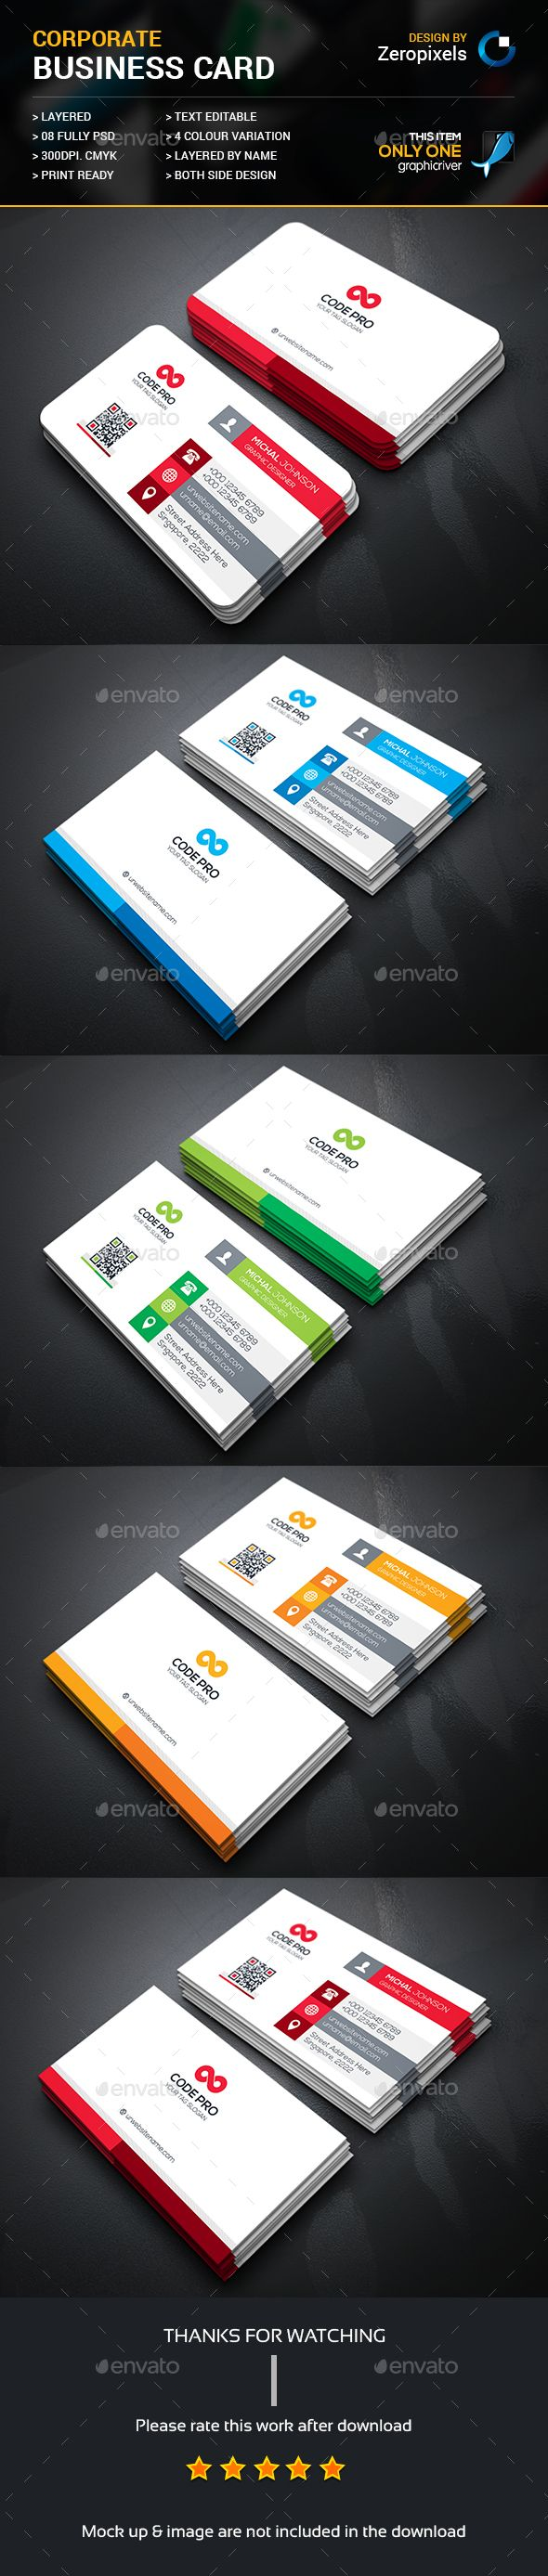 Best Business Card Templates Images On Pinterest Business - Editable business card templates free